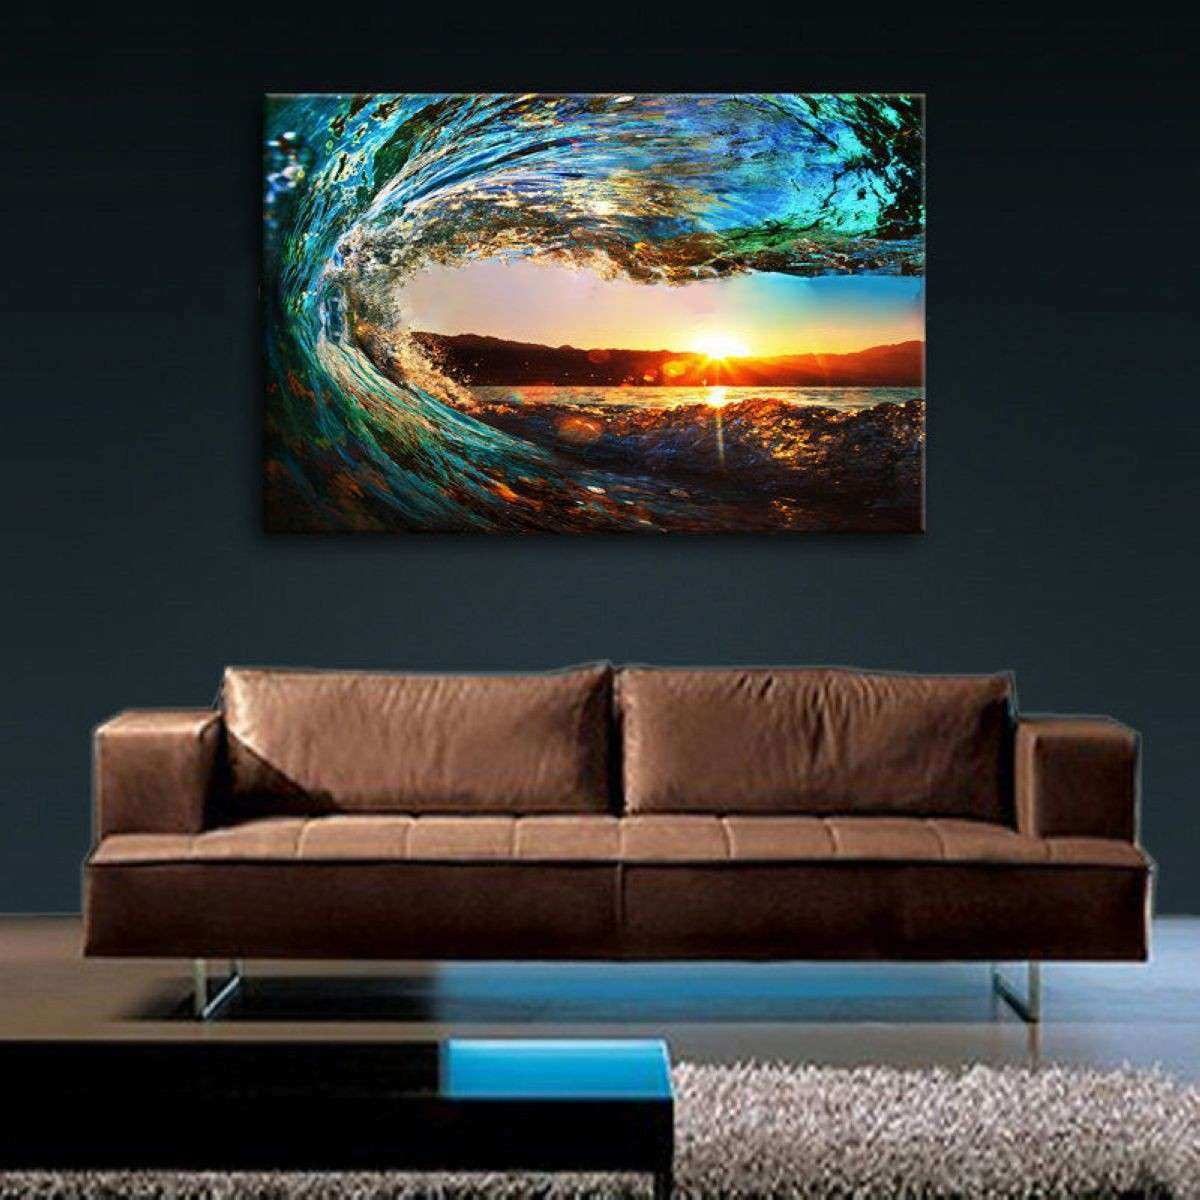 Oversized Framed Wall Art Luxury Canvas Prints Wall Art Home Decor Sea Wave